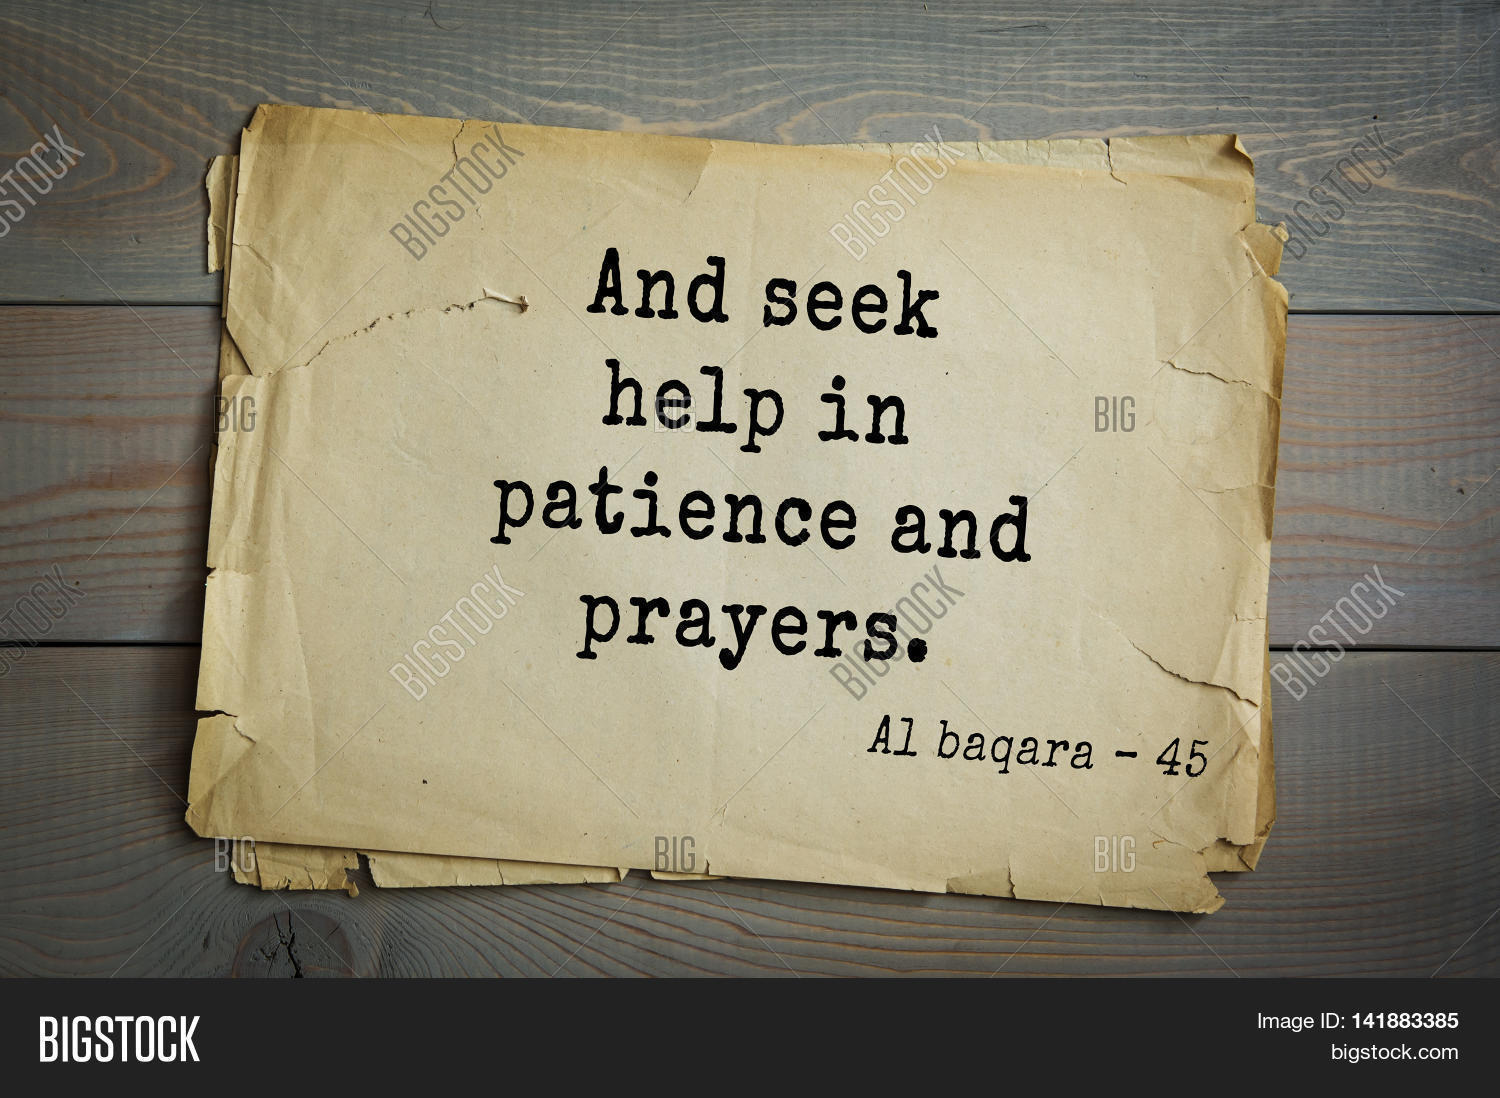 Quotes About Seeking Help: Islamic Quran Quotes. Image & Photo (Free Trial)